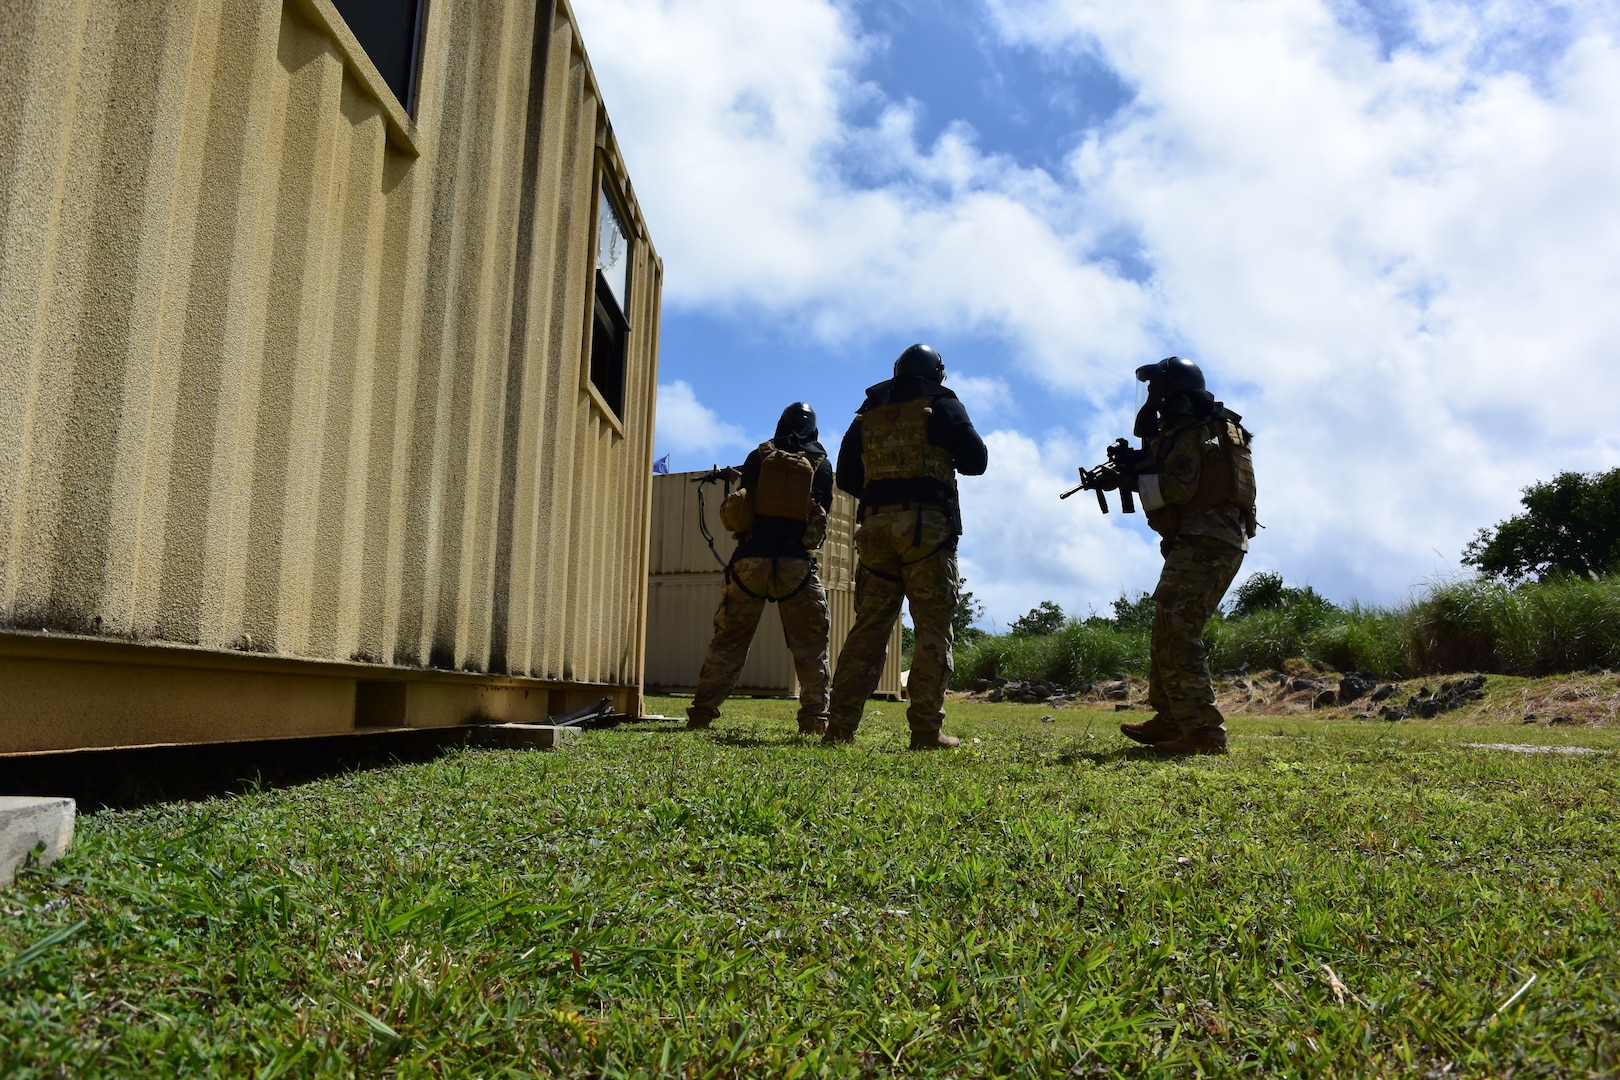 736th Security Forces Squadron Integrates Operations